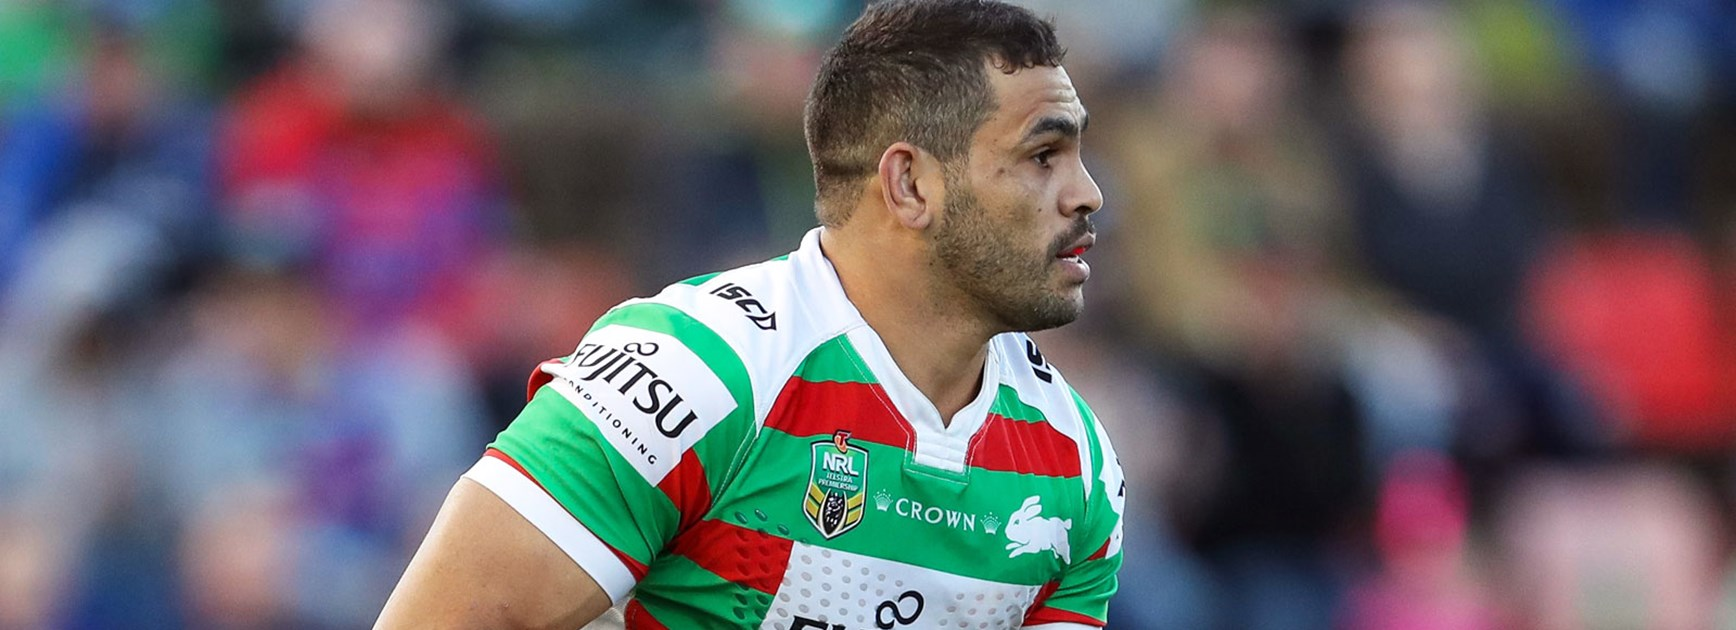 Souths captain Greg Inglis is fit and ready to face the Bulldogs in Round 26.